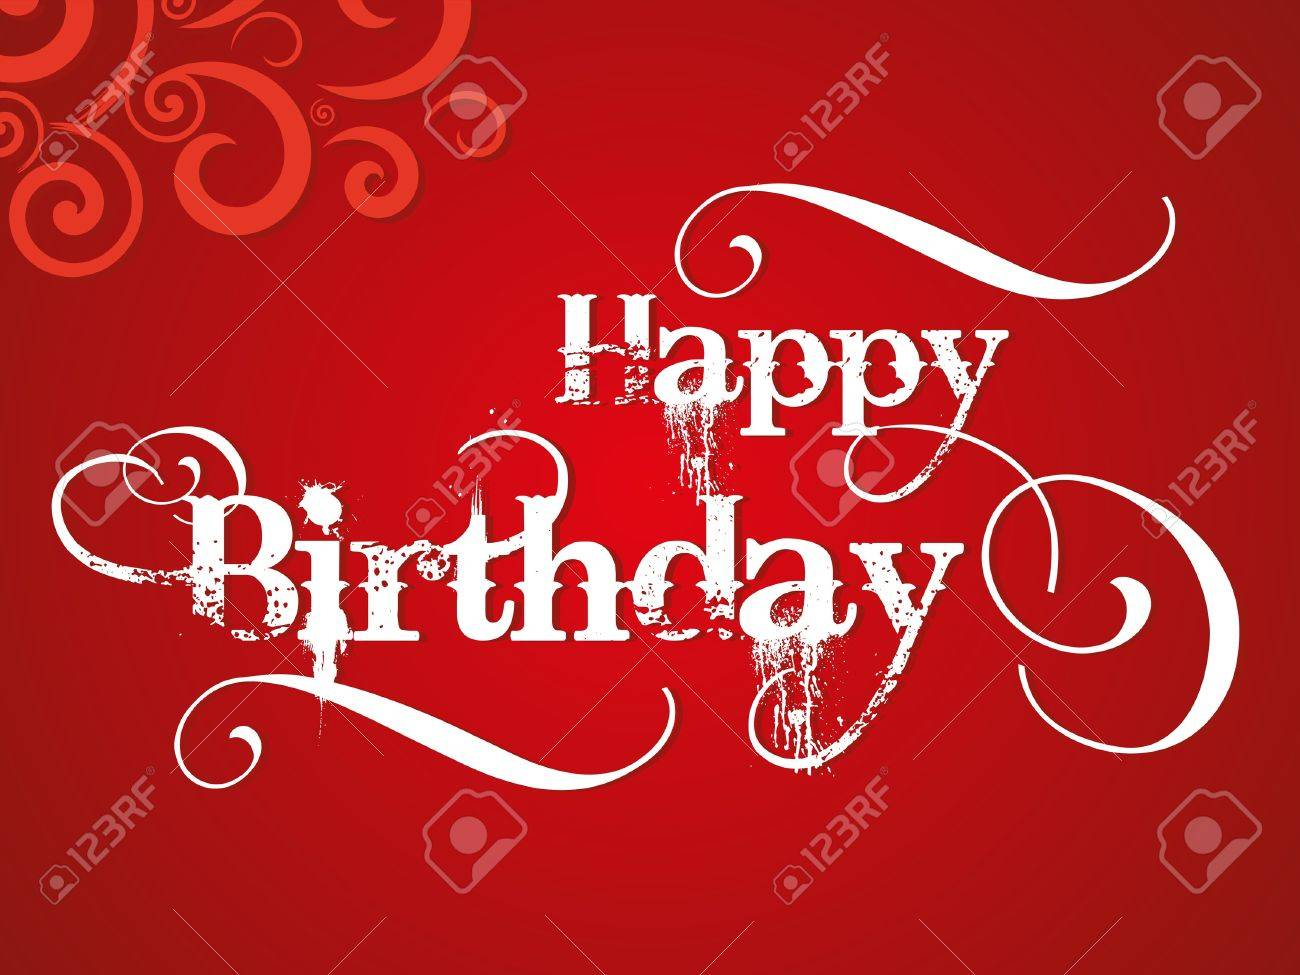 abstract happy birthday card with grunge vector illustration Stock Vector - 20223046